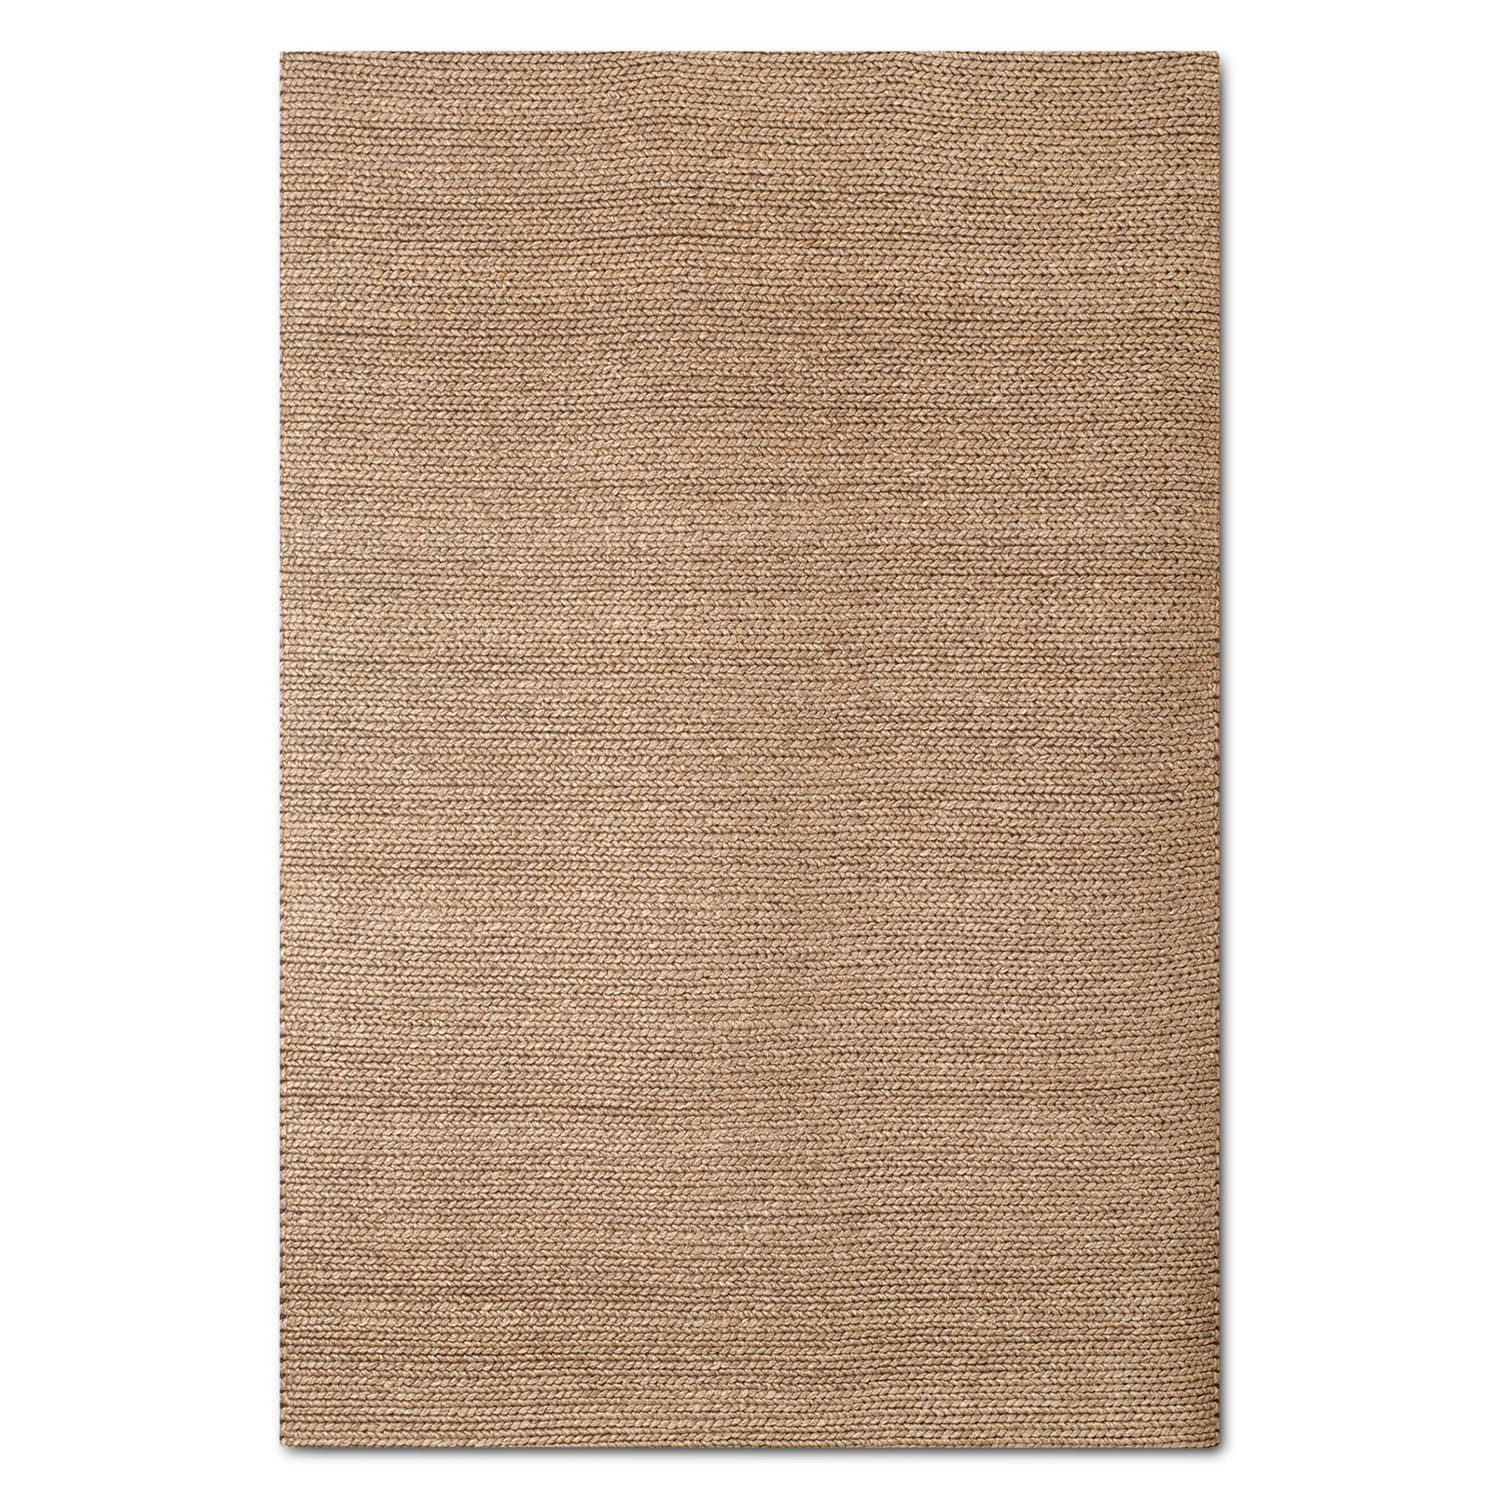 Pixley 5' x 8' Area Rug - Taupe